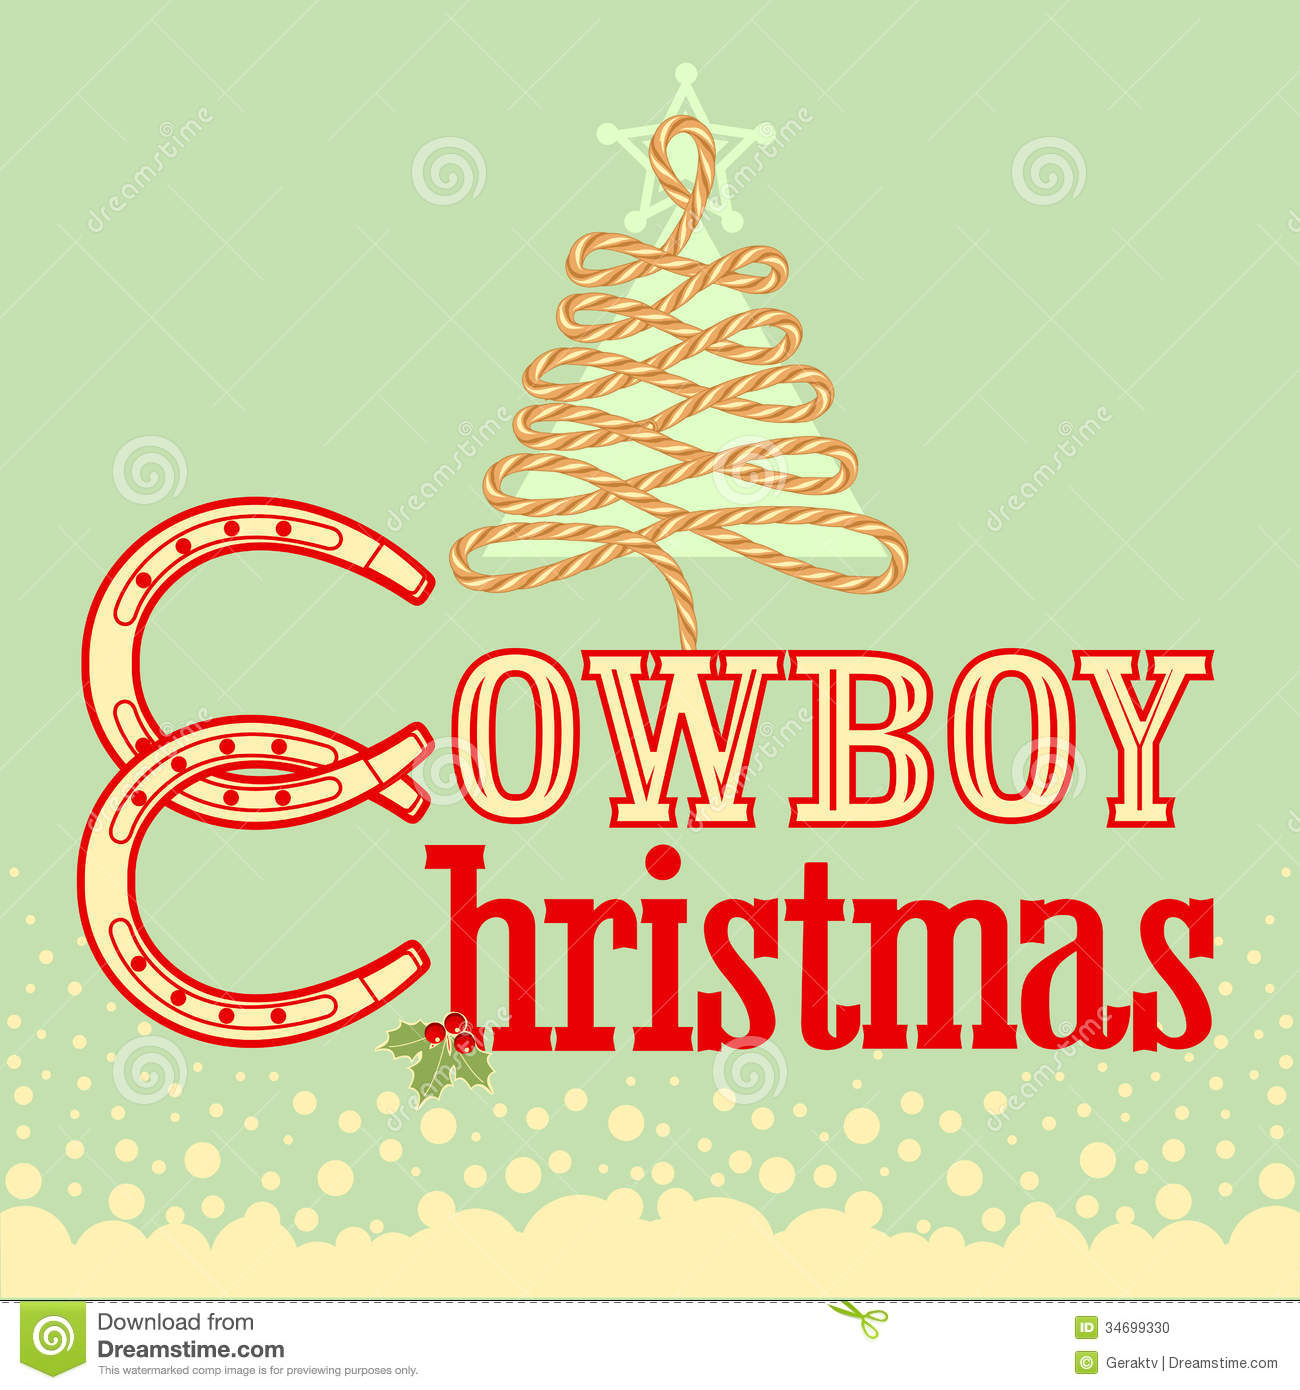 Cowboy Christmas Tree Stock Image - Image: 34610571